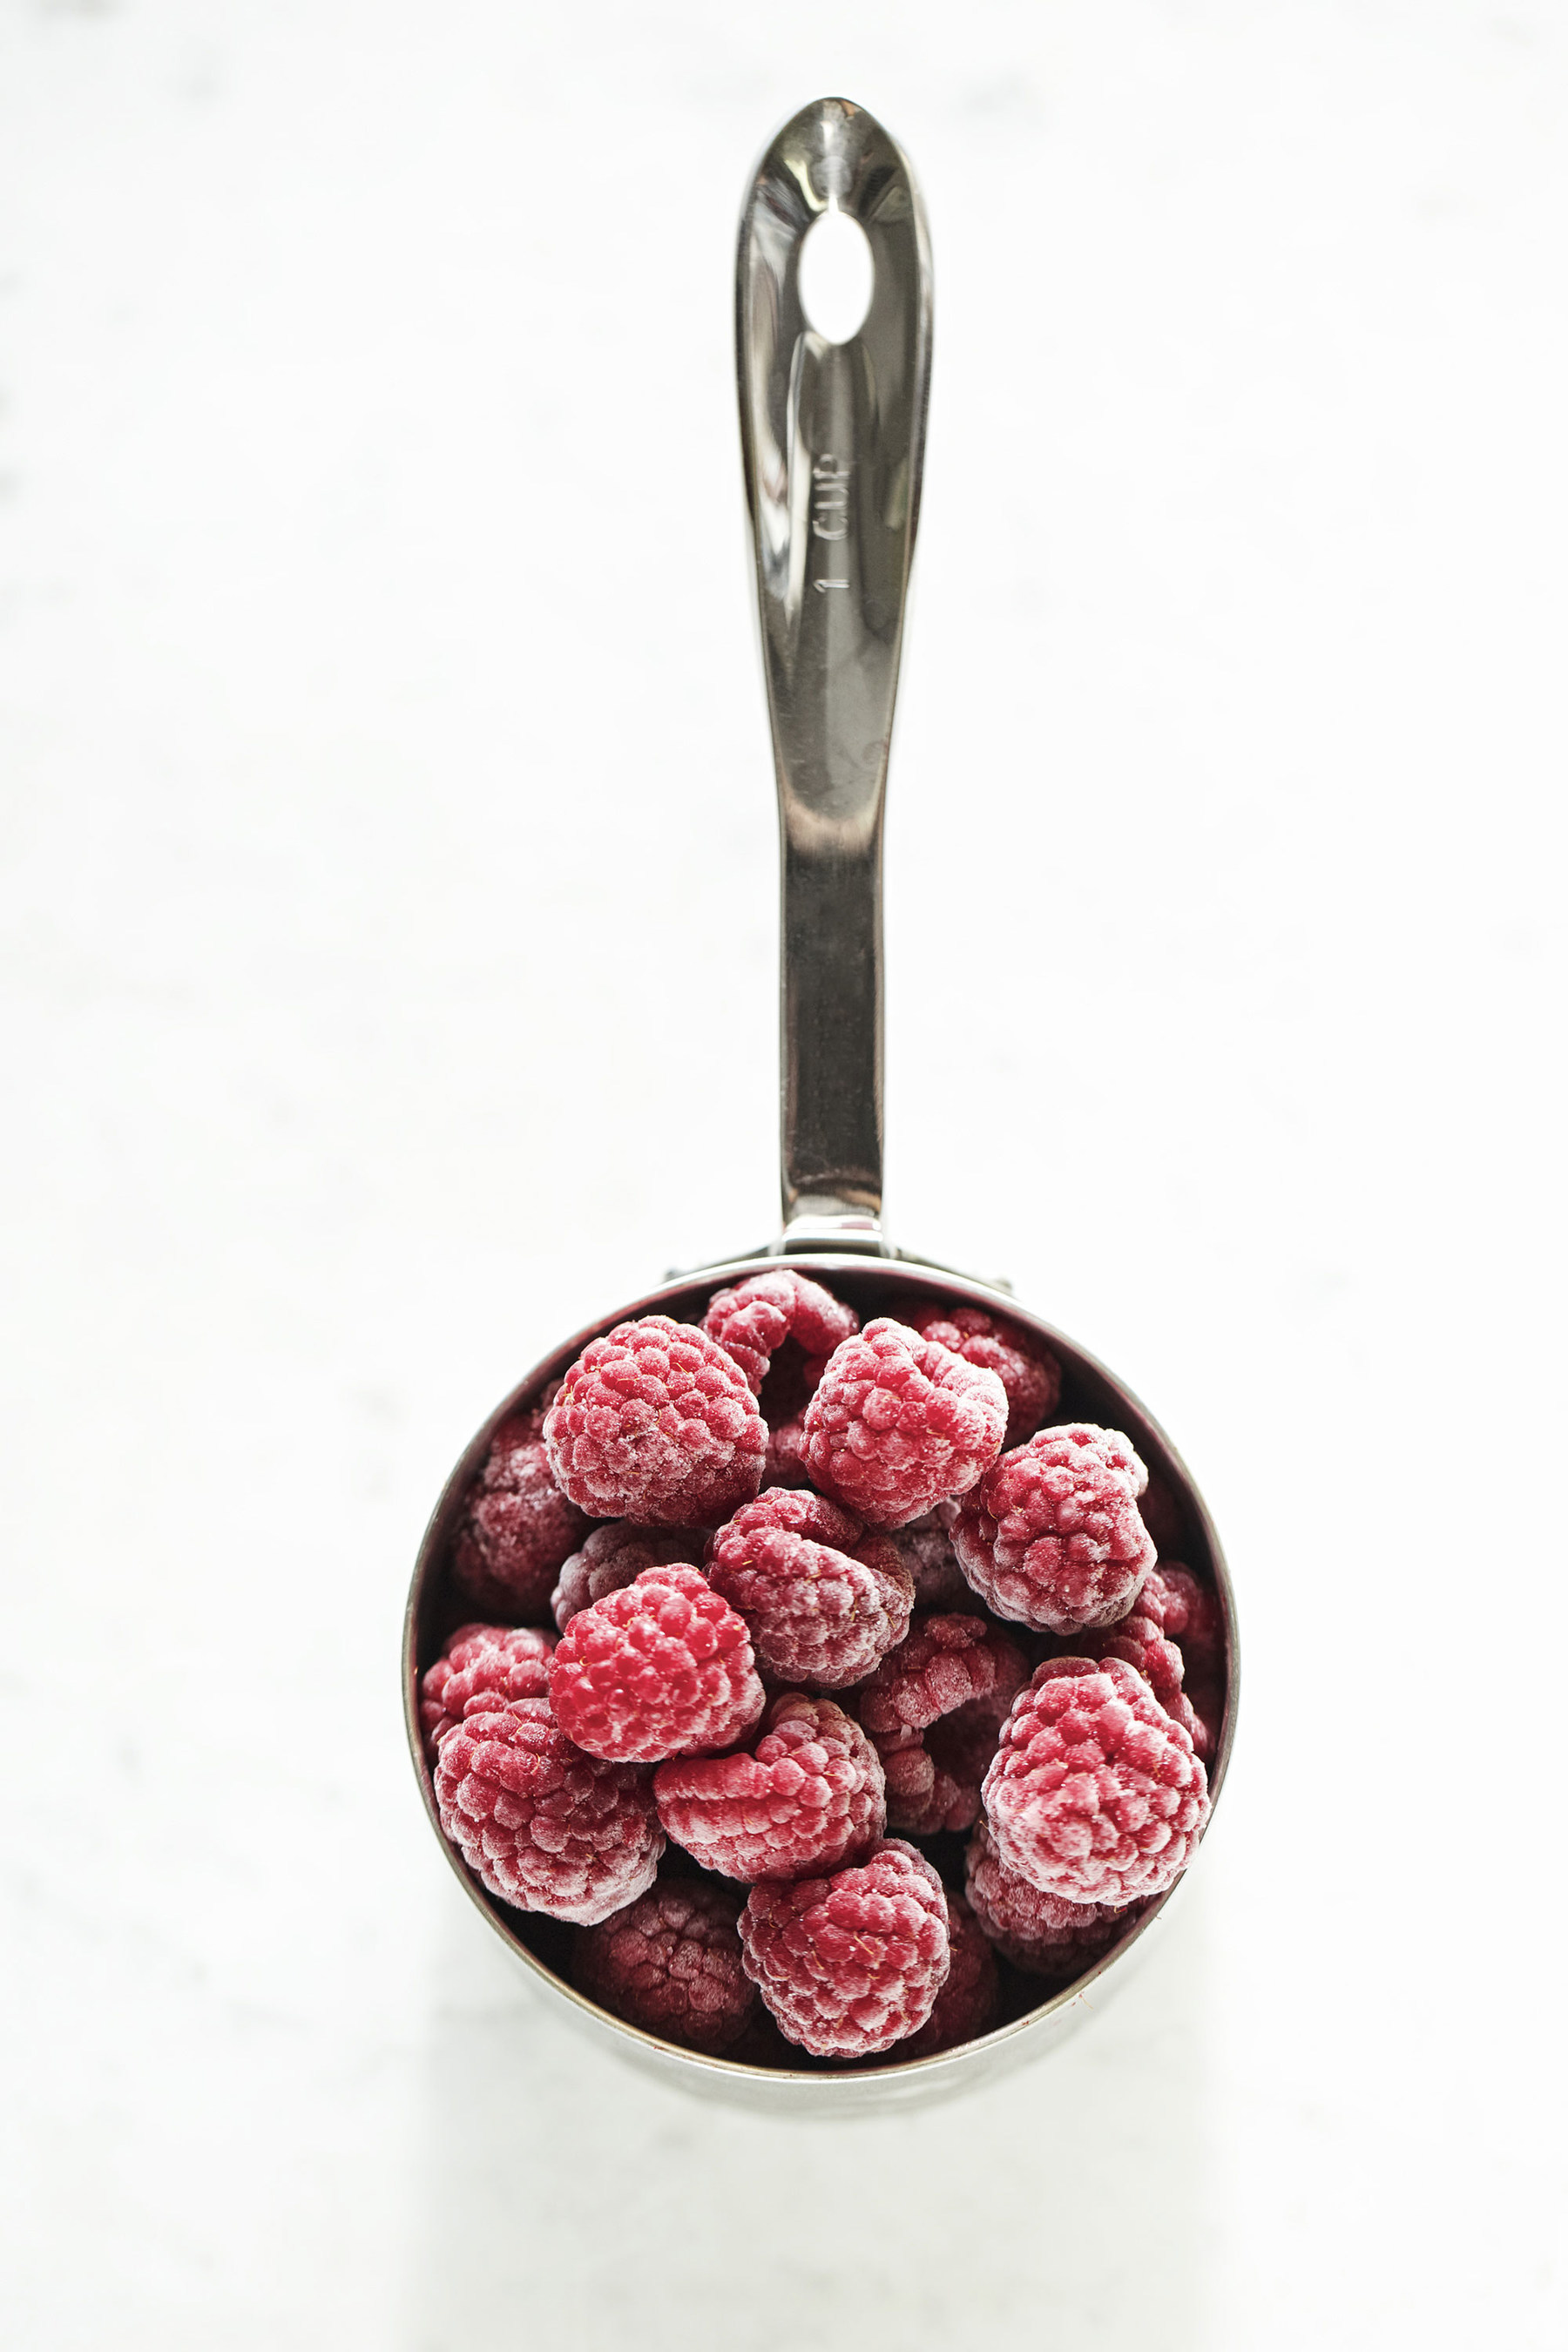 New Animal Research Explores Red Raspberries In Supporting Healthy Weight And Motor Function